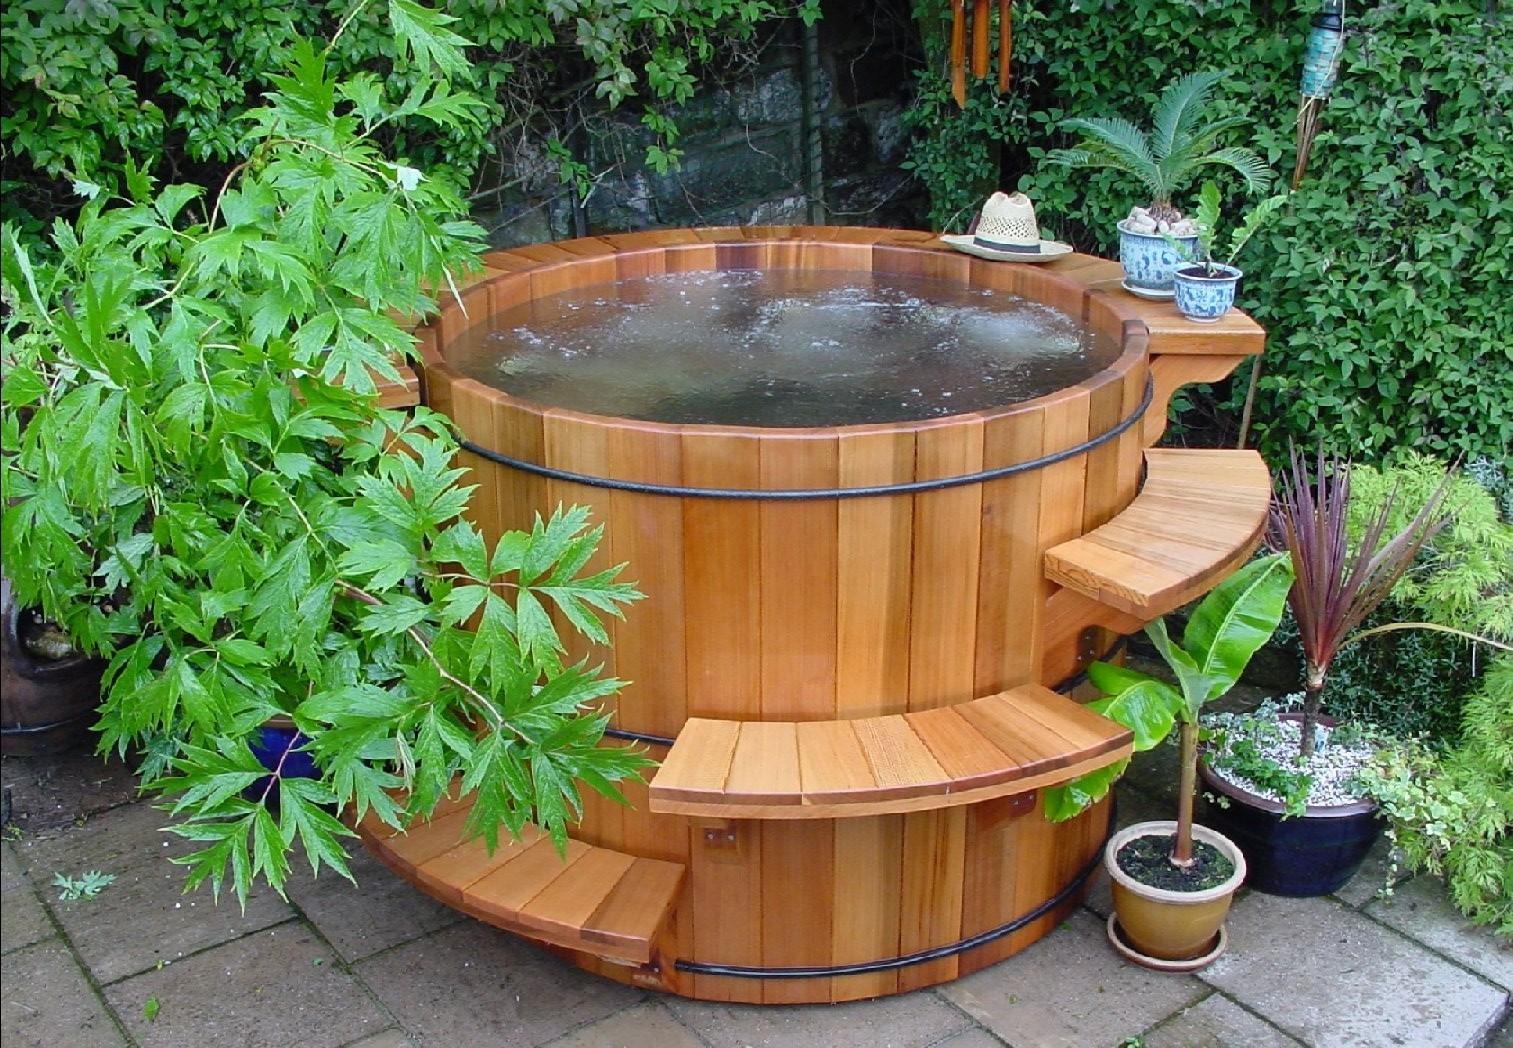 tub wiki by fandom powered wood barrel hot fired wikia wikidwelling